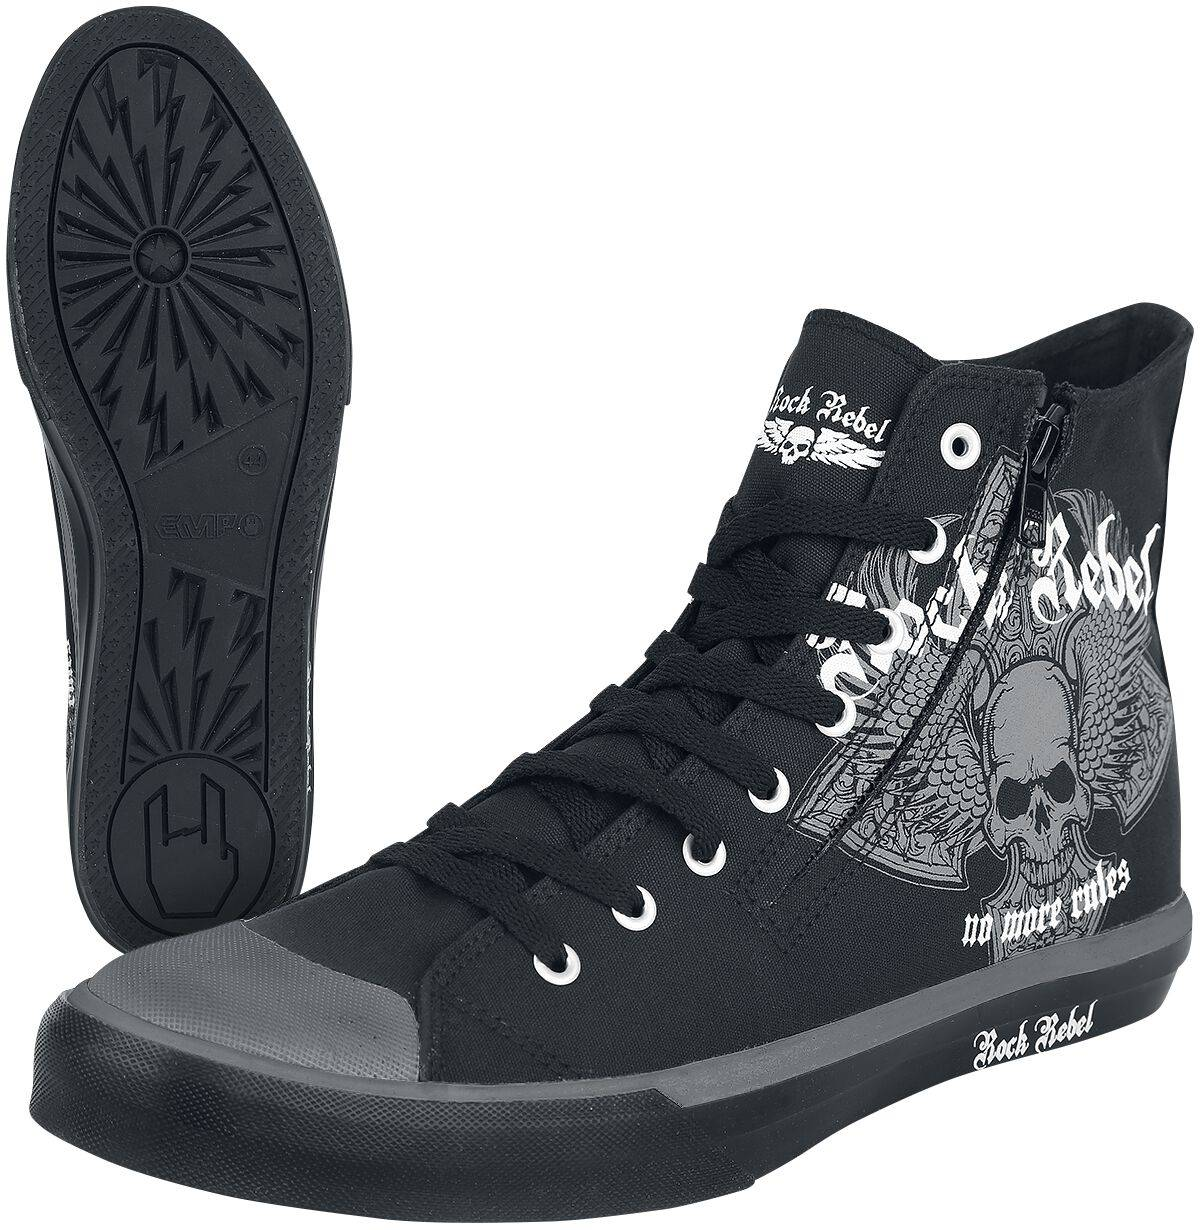 M207996 Rock Rebel by EMP Walk The Line Scarpe sportive nero